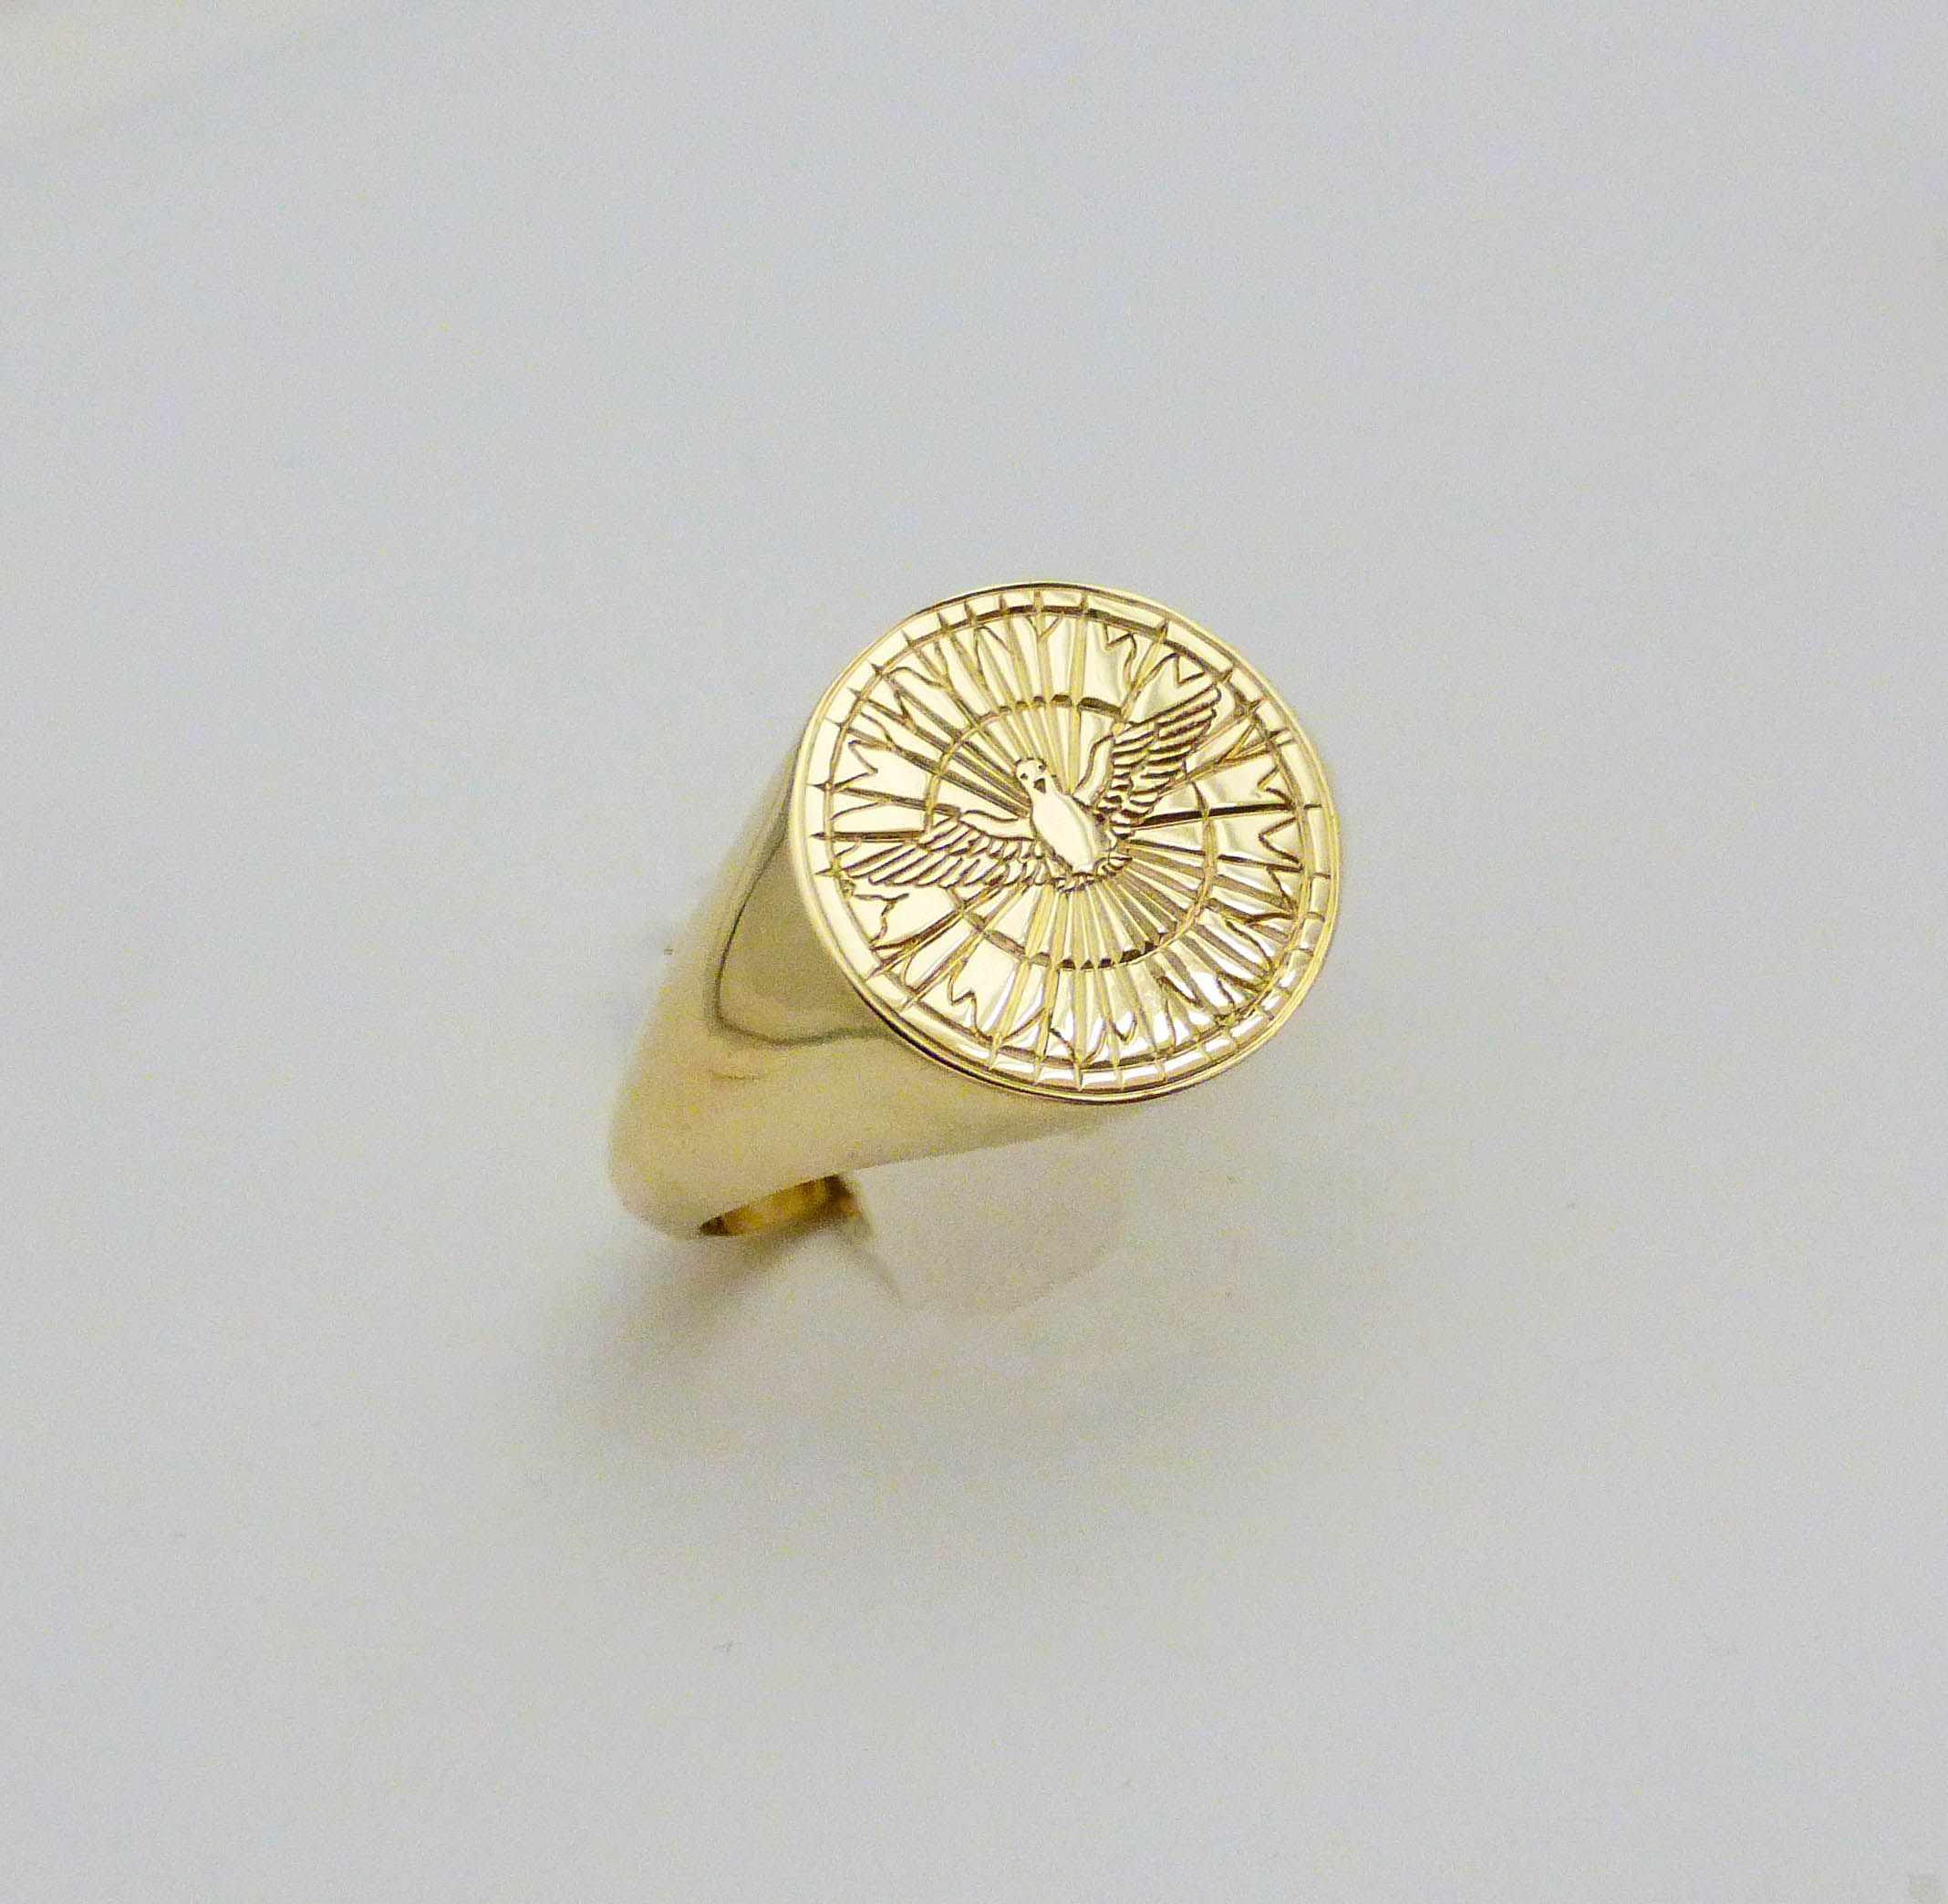 This custom gents ring was made at www.precisionring.com Contact us today to get started on your personalized jewellery